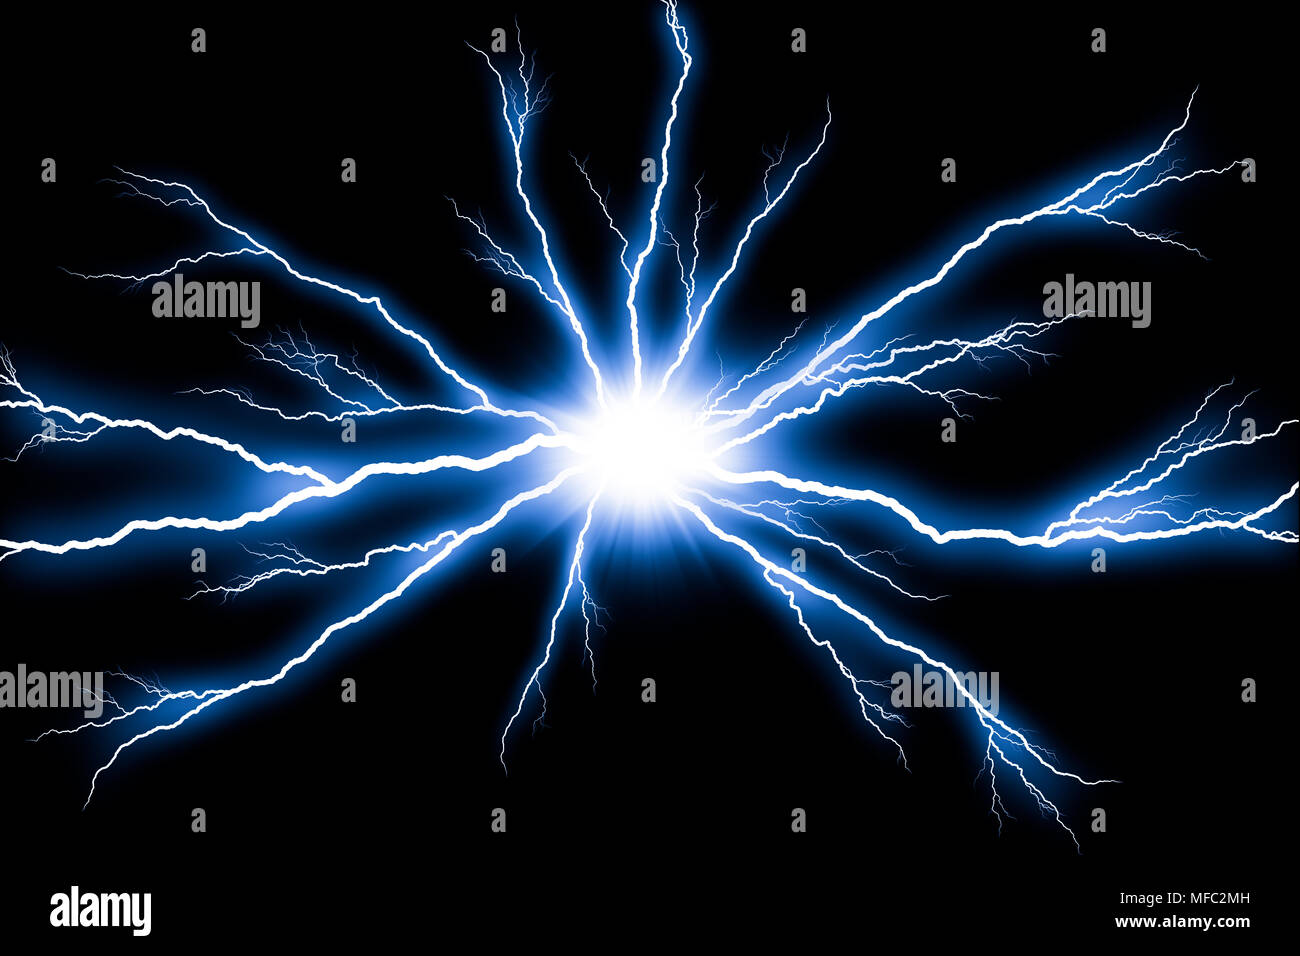 Electricity Lightning Flash Thunder Isolated On Black Background Stock Photo Alamy Download 53,524 background lightning stock illustrations, vectors & clipart for free or amazingly low rates! https www alamy com electricity lightning flash thunder isolated on black background image181589089 html